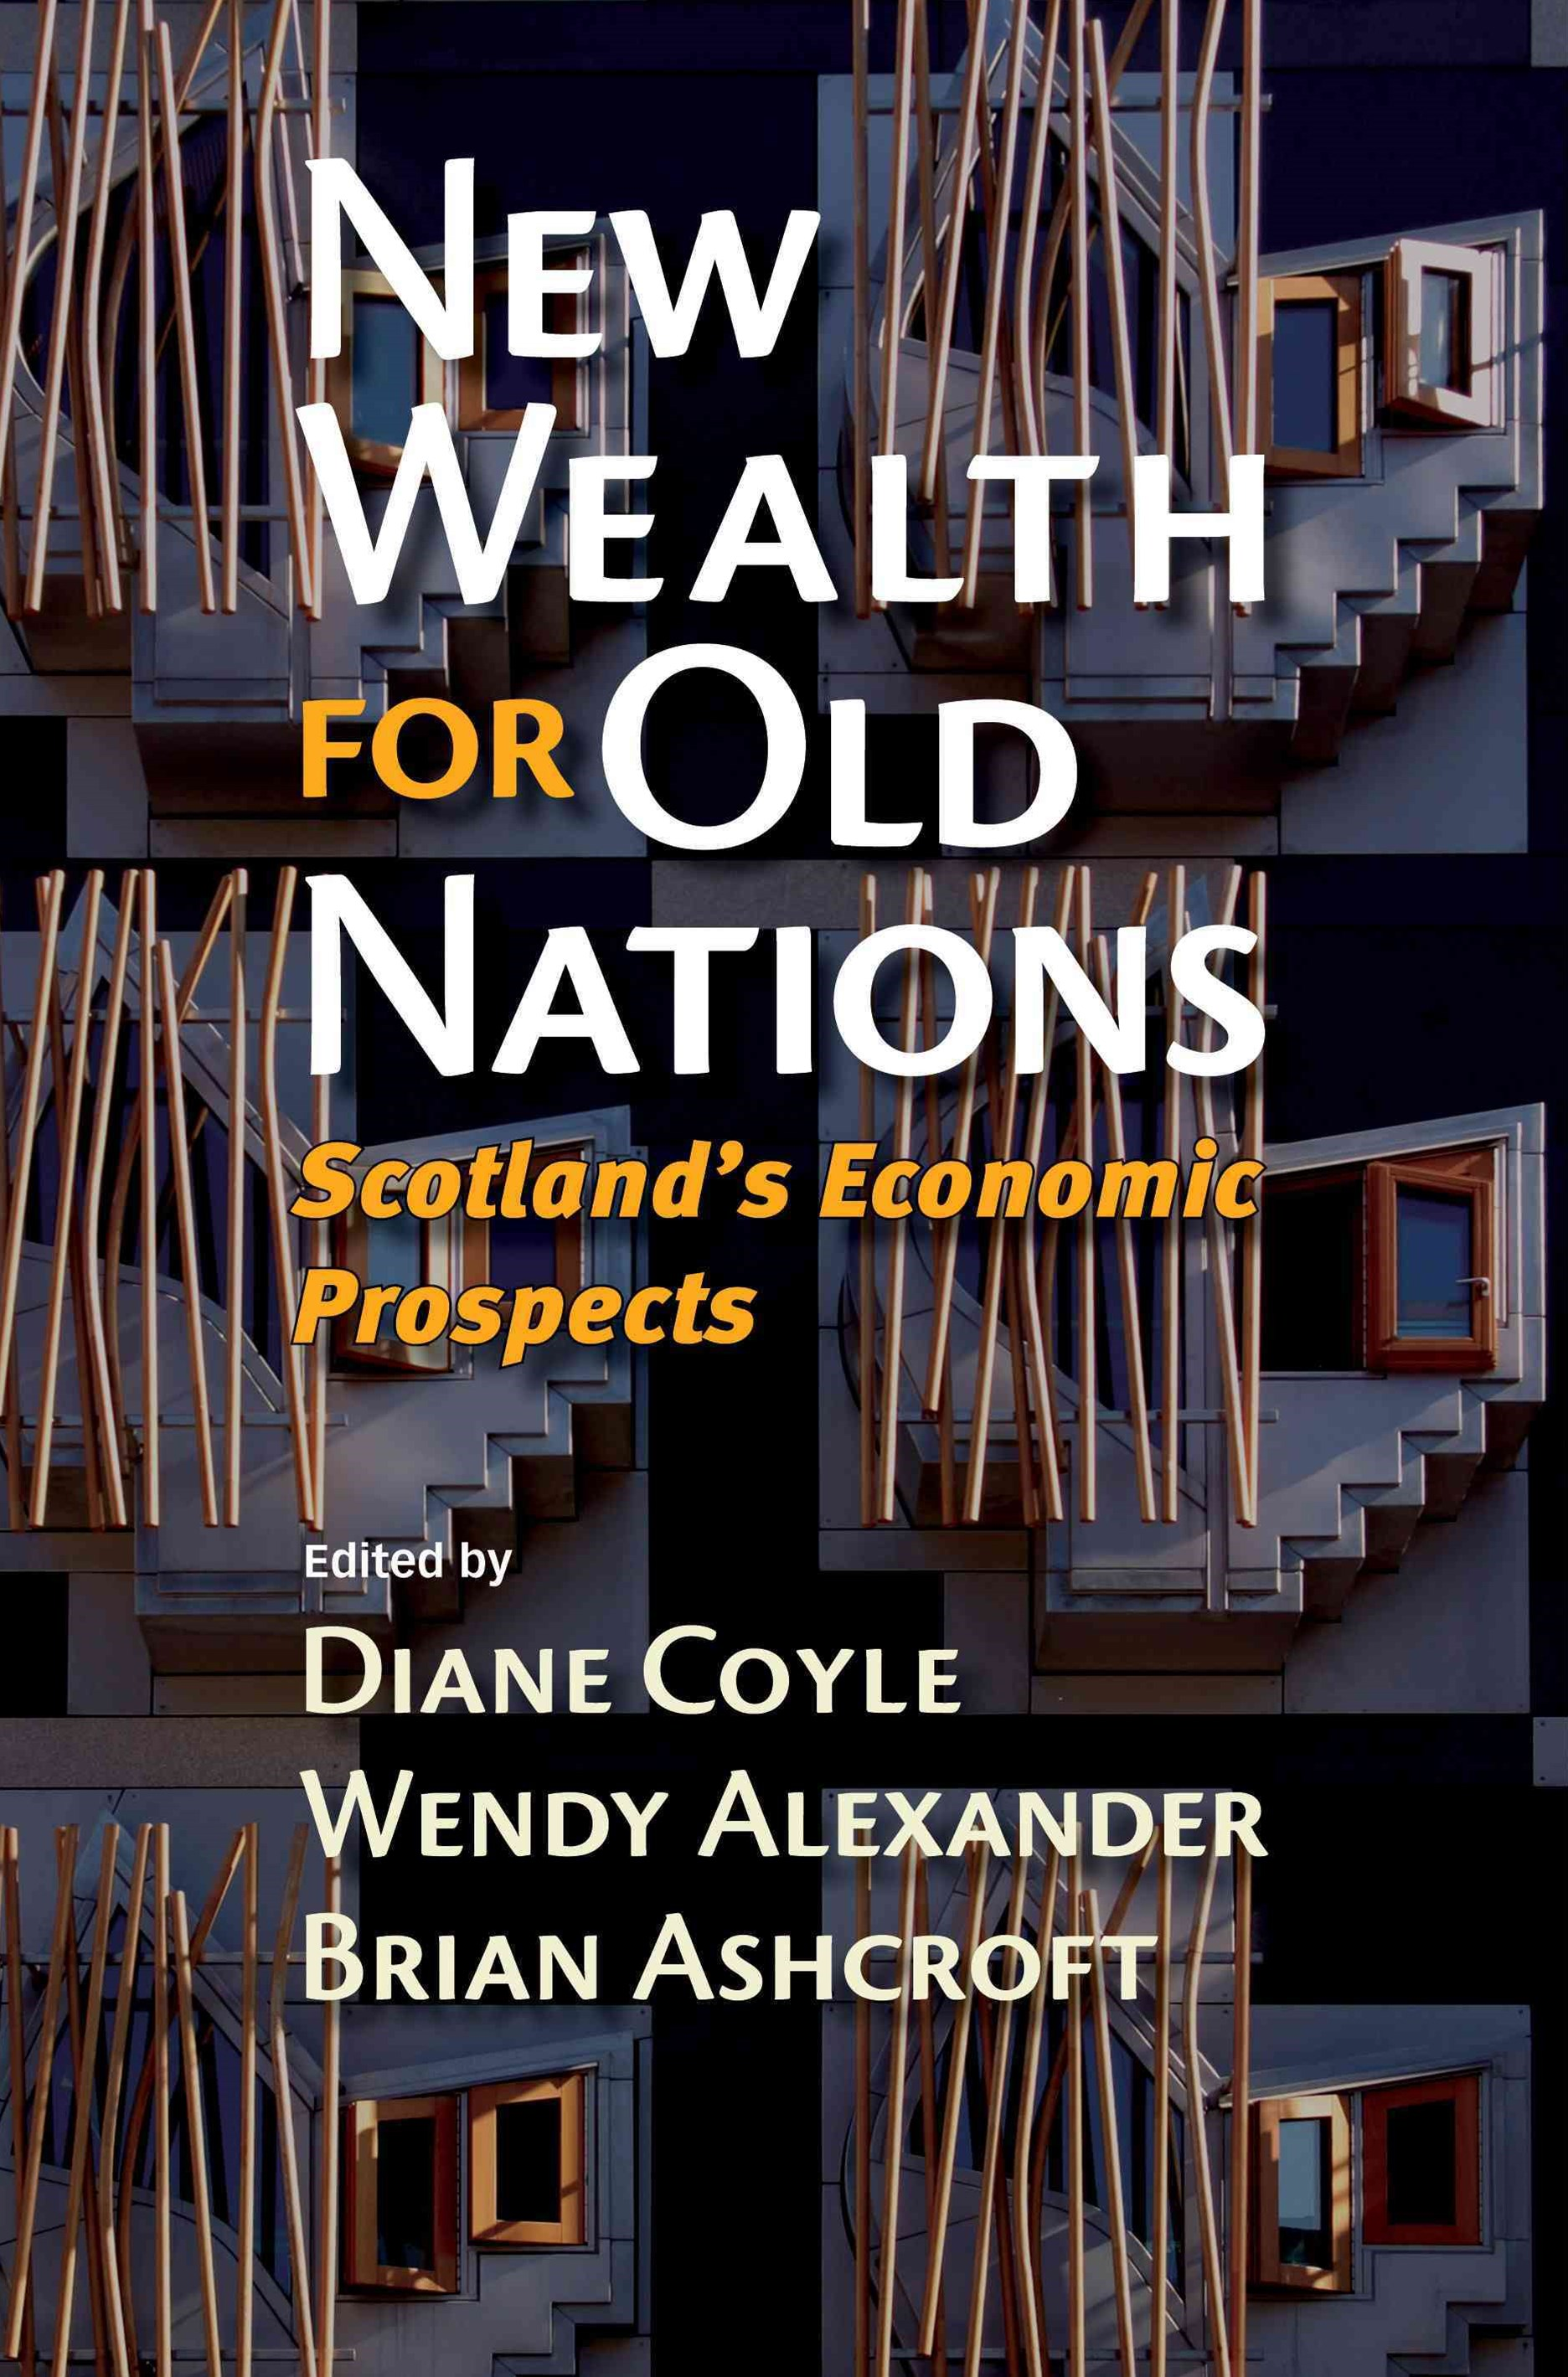 New Wealth for Old Nations